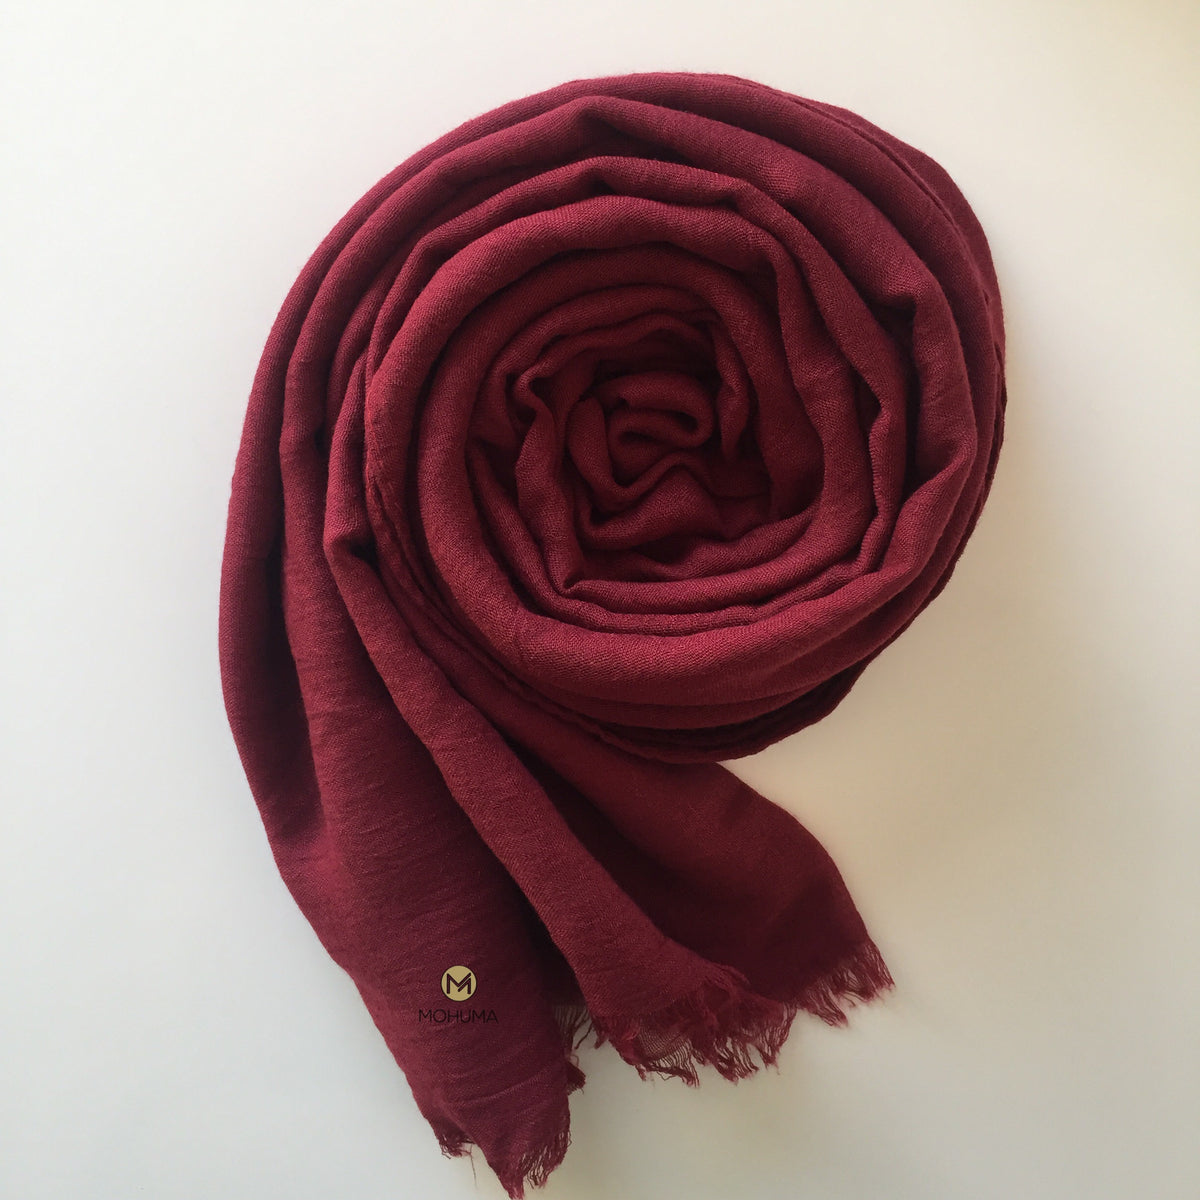 Premium Breathable Cotton Blend Hijab | Maroon - Mohuma Modesty House